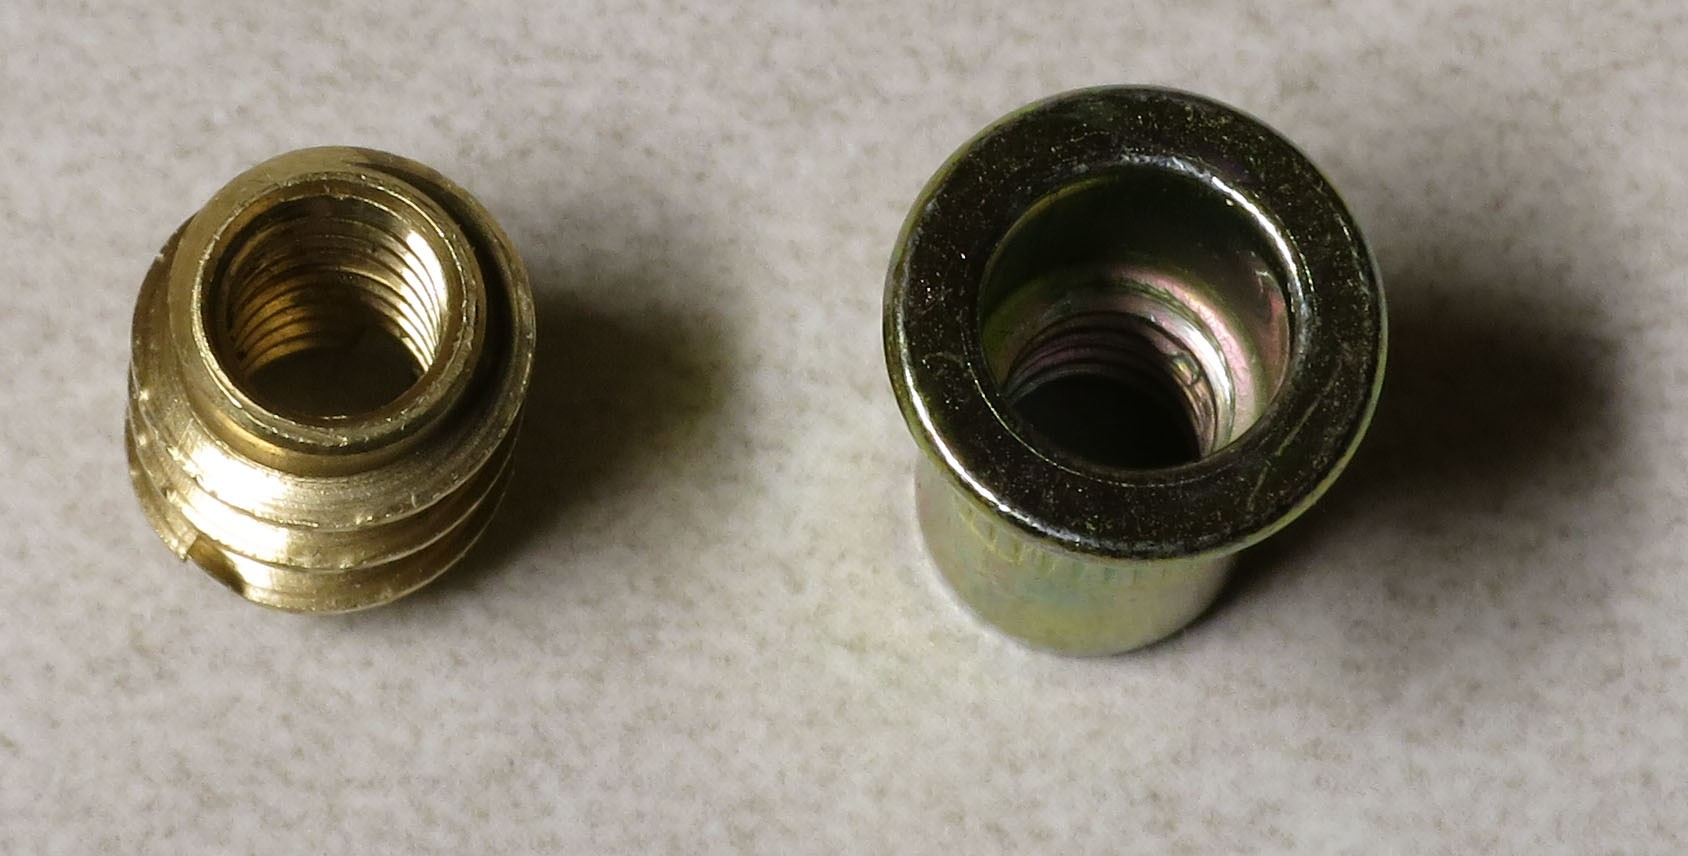 Instructions Affordable Reflectance Transformation Imaging Dome Thread Some Help With A Circuit I39m Working Onhopefully You Now Want To Put 20 Threaded Inserts Into The Top Of Dowels There Are Two Varieties These Screw In Left And Press Fit Right